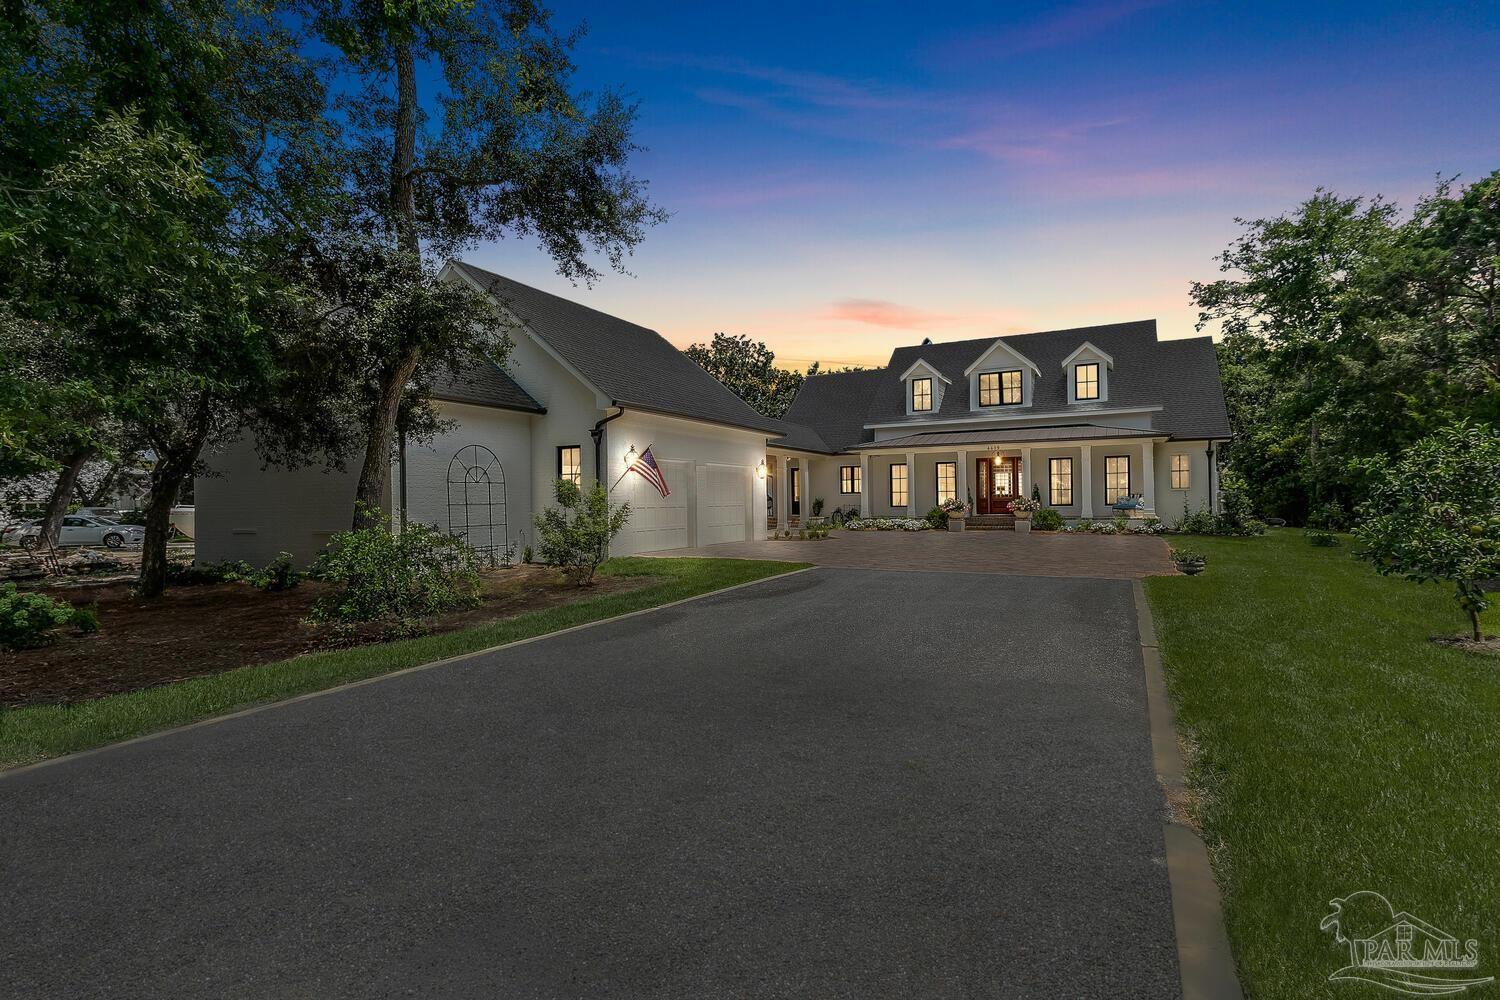 Coastal Living meets Southern Living in this fabulous waterfront retreat! Constructed in 2020 of the finest materials and finishes, this residence is stunning! Open the door to sweeping views of the Santa Rosa Sound that welcome you home. The flawless design provides a bright and airy coastal ambiance with remarkable architectural details and craftsmanship. The first floor is designed for entertaining with open concept living spaces that open to the outdoors. The boat dock with lift is where the outdoor festivities begin with boating, fishing, or kayaking. The dock offers a lift to accommodate a large boat. After your outdoor activities, retreat to the 400 sq ft porch complete with brick pavers and a brick wood burning fireplace as the gathering area. The doors and windows are all impact glass. The millwork throughout the home is top of the line. The kitchen highlights two built-in pantries with a pop of color and antiqued mirrored glass insets. There is an expansive island, two sinks, six burner gas cooktop, pot filler, a custom hood and stylish champagne gold hardware. There is a great homeschooling/office space that adjoins the kitchen. Then continue onto a spacious laundry/mudroom. The downstairs hosts the master suite as well as one guest suite. As you would expect, the master offers beautiful water views, a fabulous bath and oversized closet with custom built-ins. Upstairs, two guest bedrooms open to a large playroom/den. This area boasts panoramic water views There is walk-in storage that can be converted to additional living space. Adjoining the oversized garage is a heated/cooled fishing room.  Above the garage is more space with electrical/plumbing that could be finished out for a guest apartment. The home is located on .75 acres, affording privacy and plenty of space for a pool or guest house. One of the most beautiful homes on the Gulf Coast, this waterfront retreat is a dream come true!